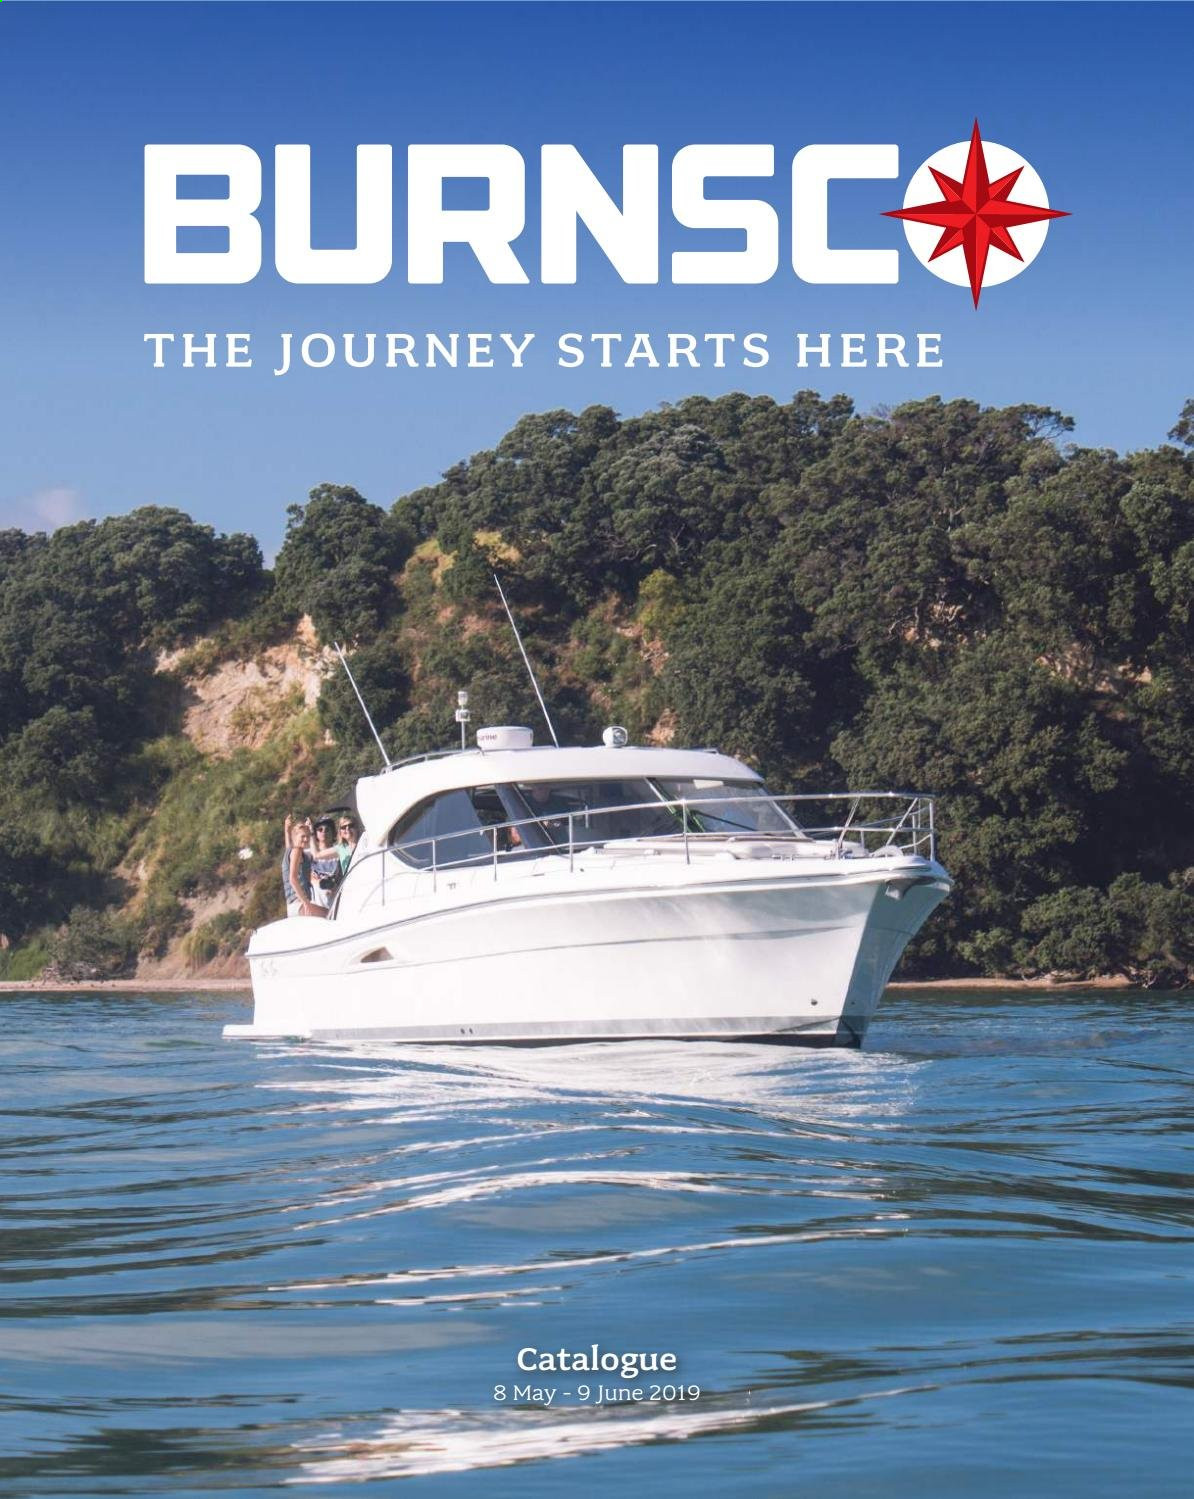 Burnsco mailer  - 08.05.2019 - 09.06.2019. Page 1.